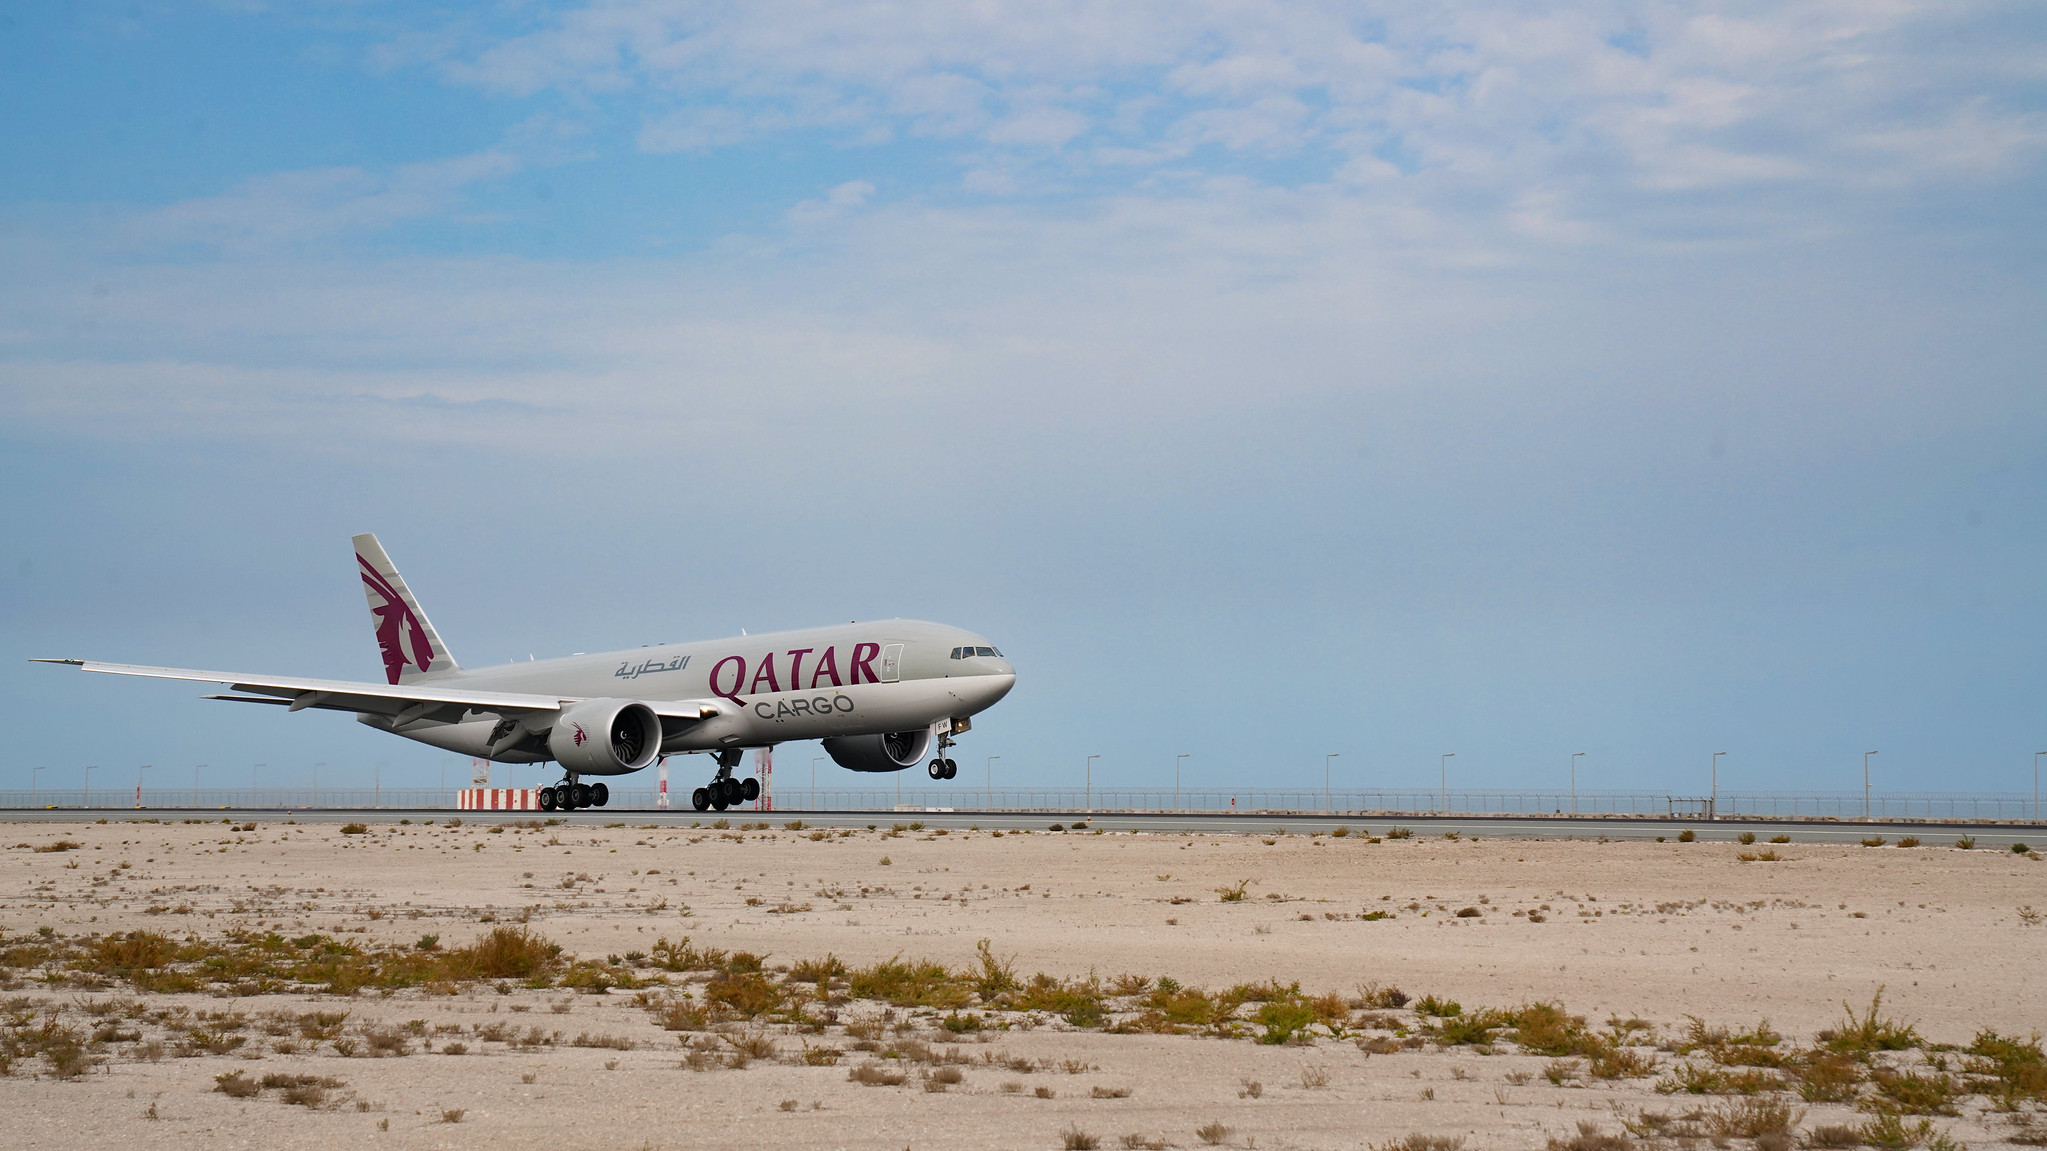 Qatar Airways Cargo Takes Delivery of Three Brand New Boeing 777 Freighters